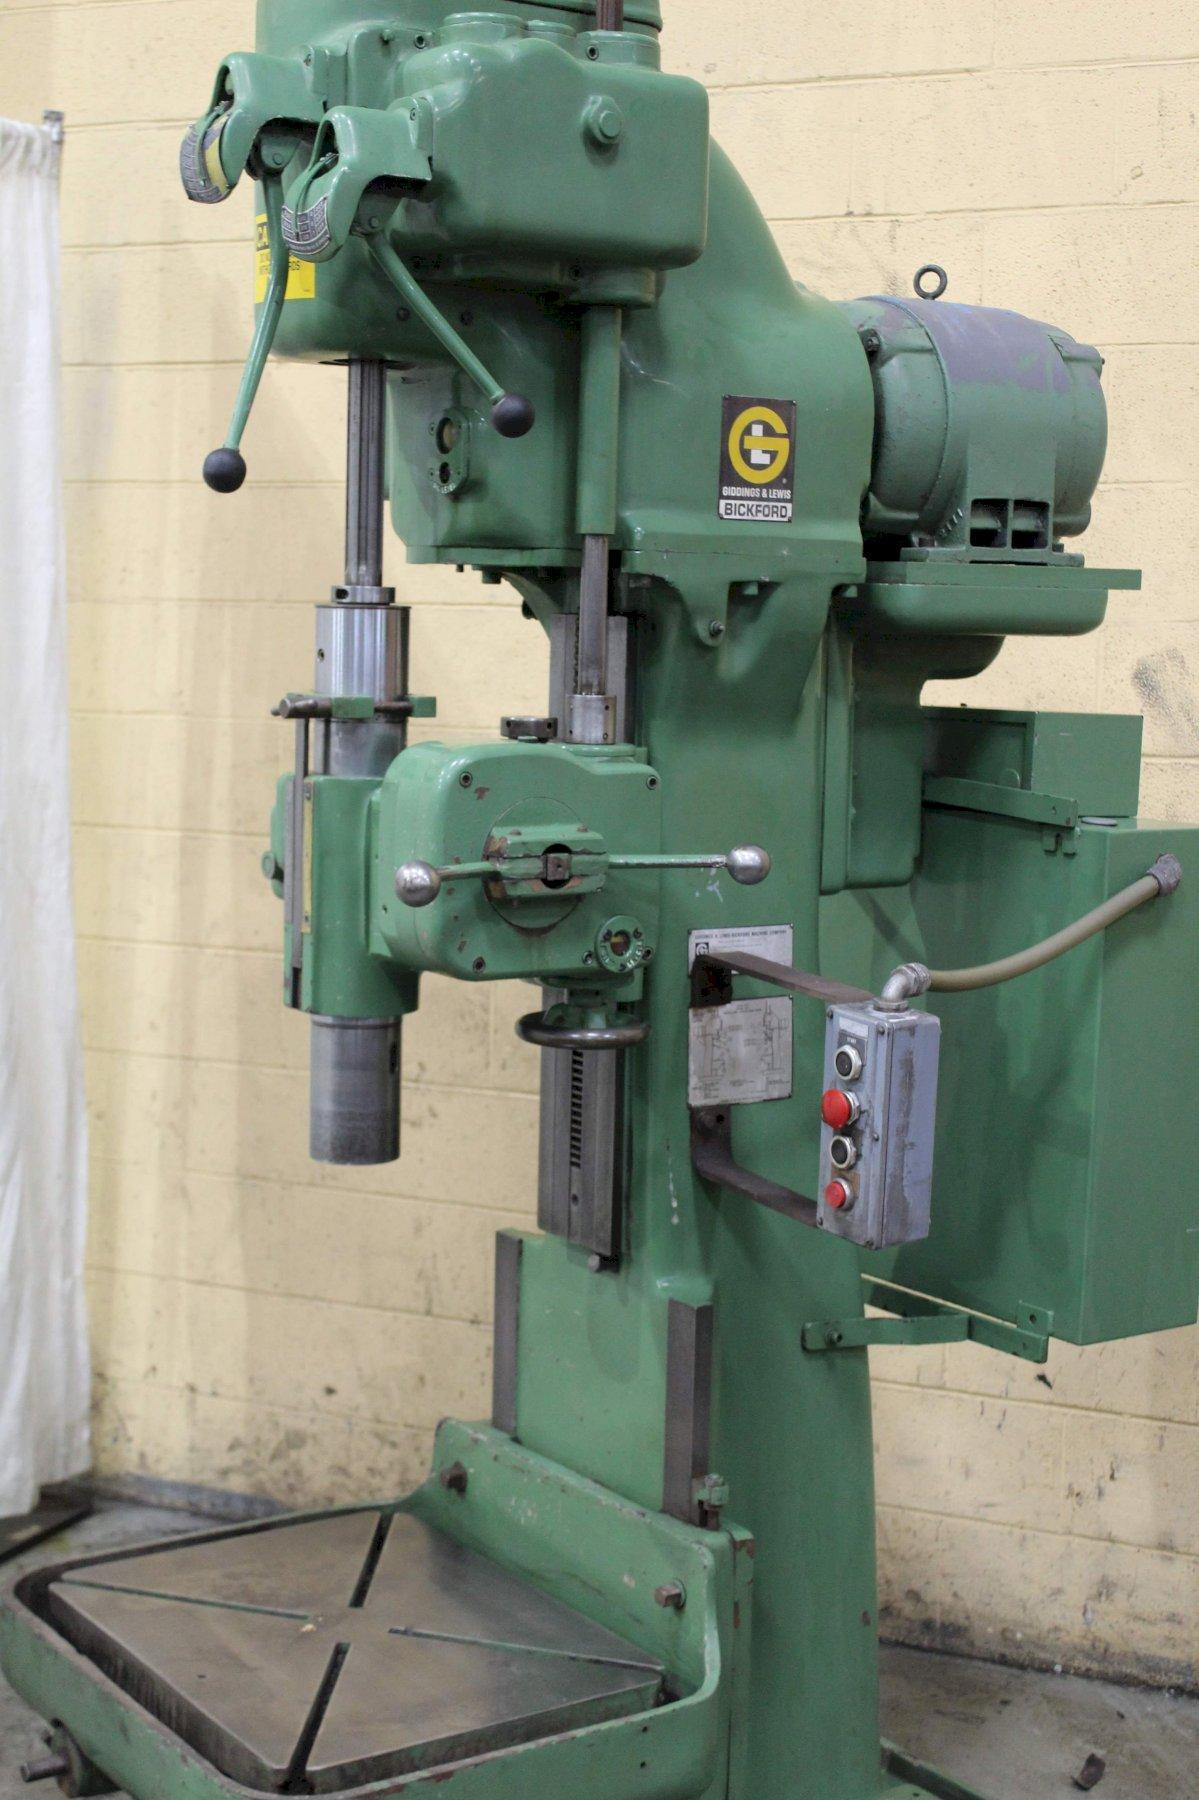 24' GIDDING & LEWIS SINGLE SPINDLE DRILL: STOCK #71890